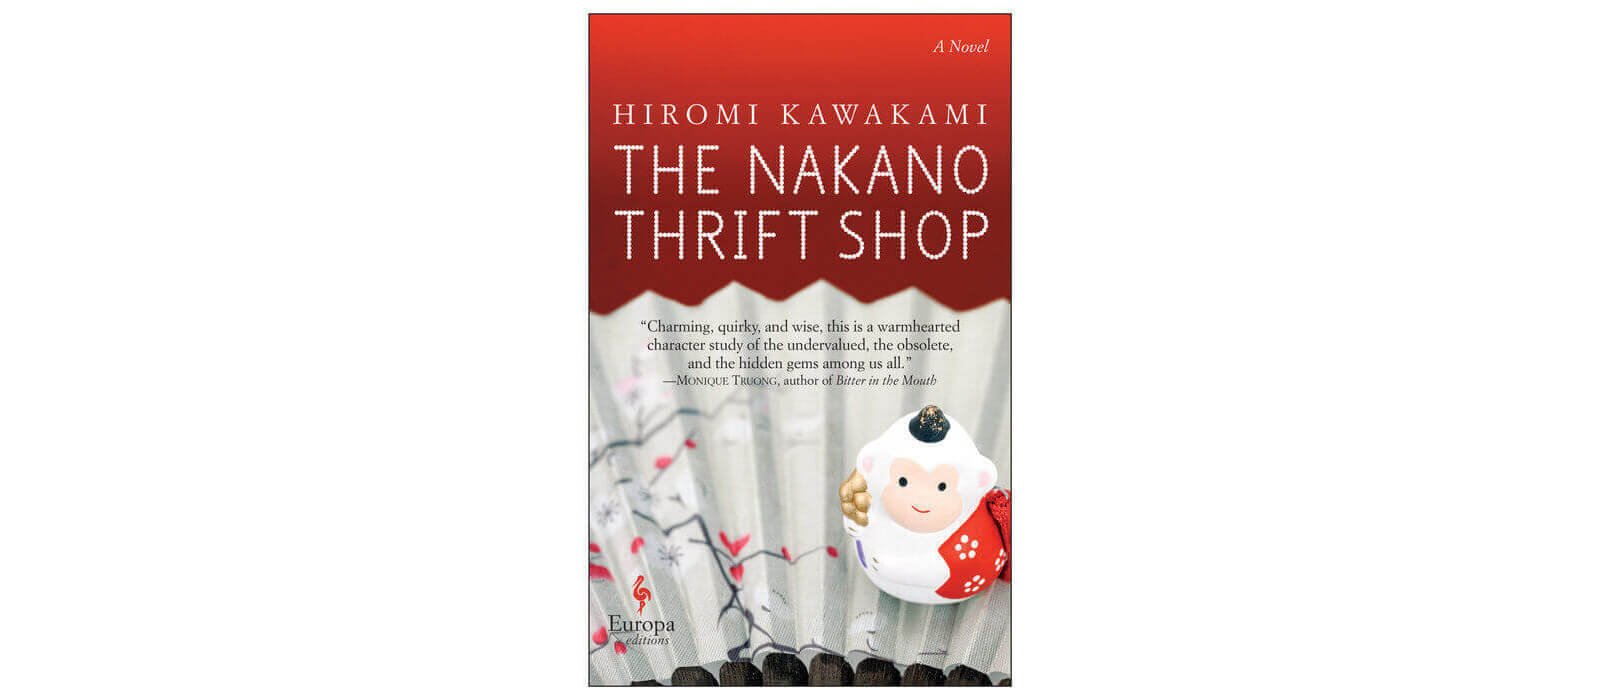 June 2017 Manga Releases - The Nakano Thrift Shop